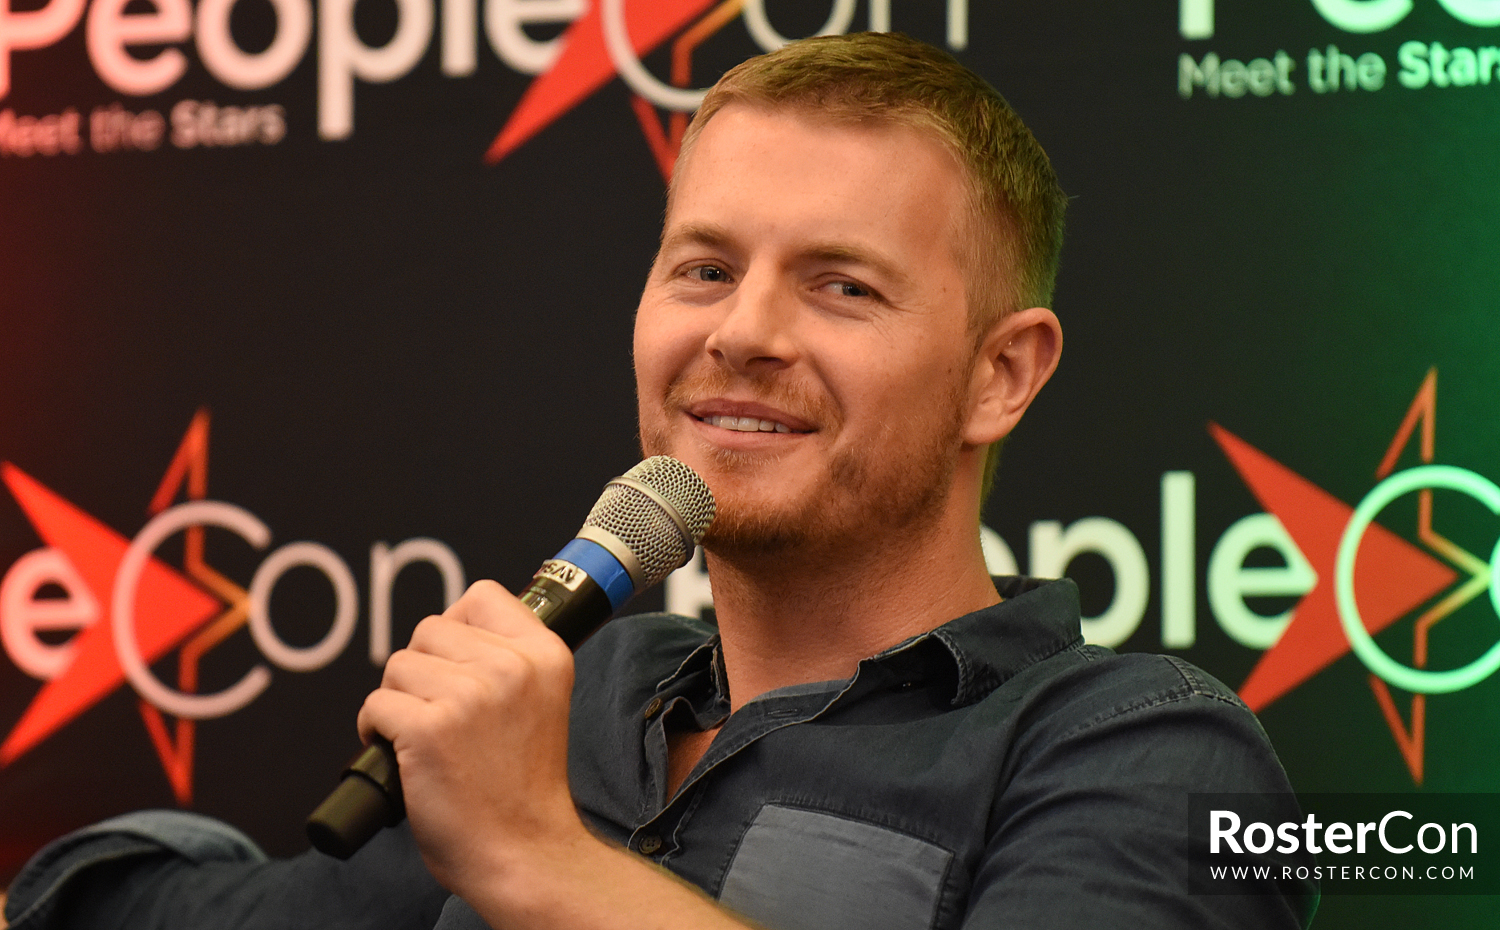 The vampire diaries roster con qa paul blackthorne rick cosnett super heroes con 4 arrow the flash m4hsunfo